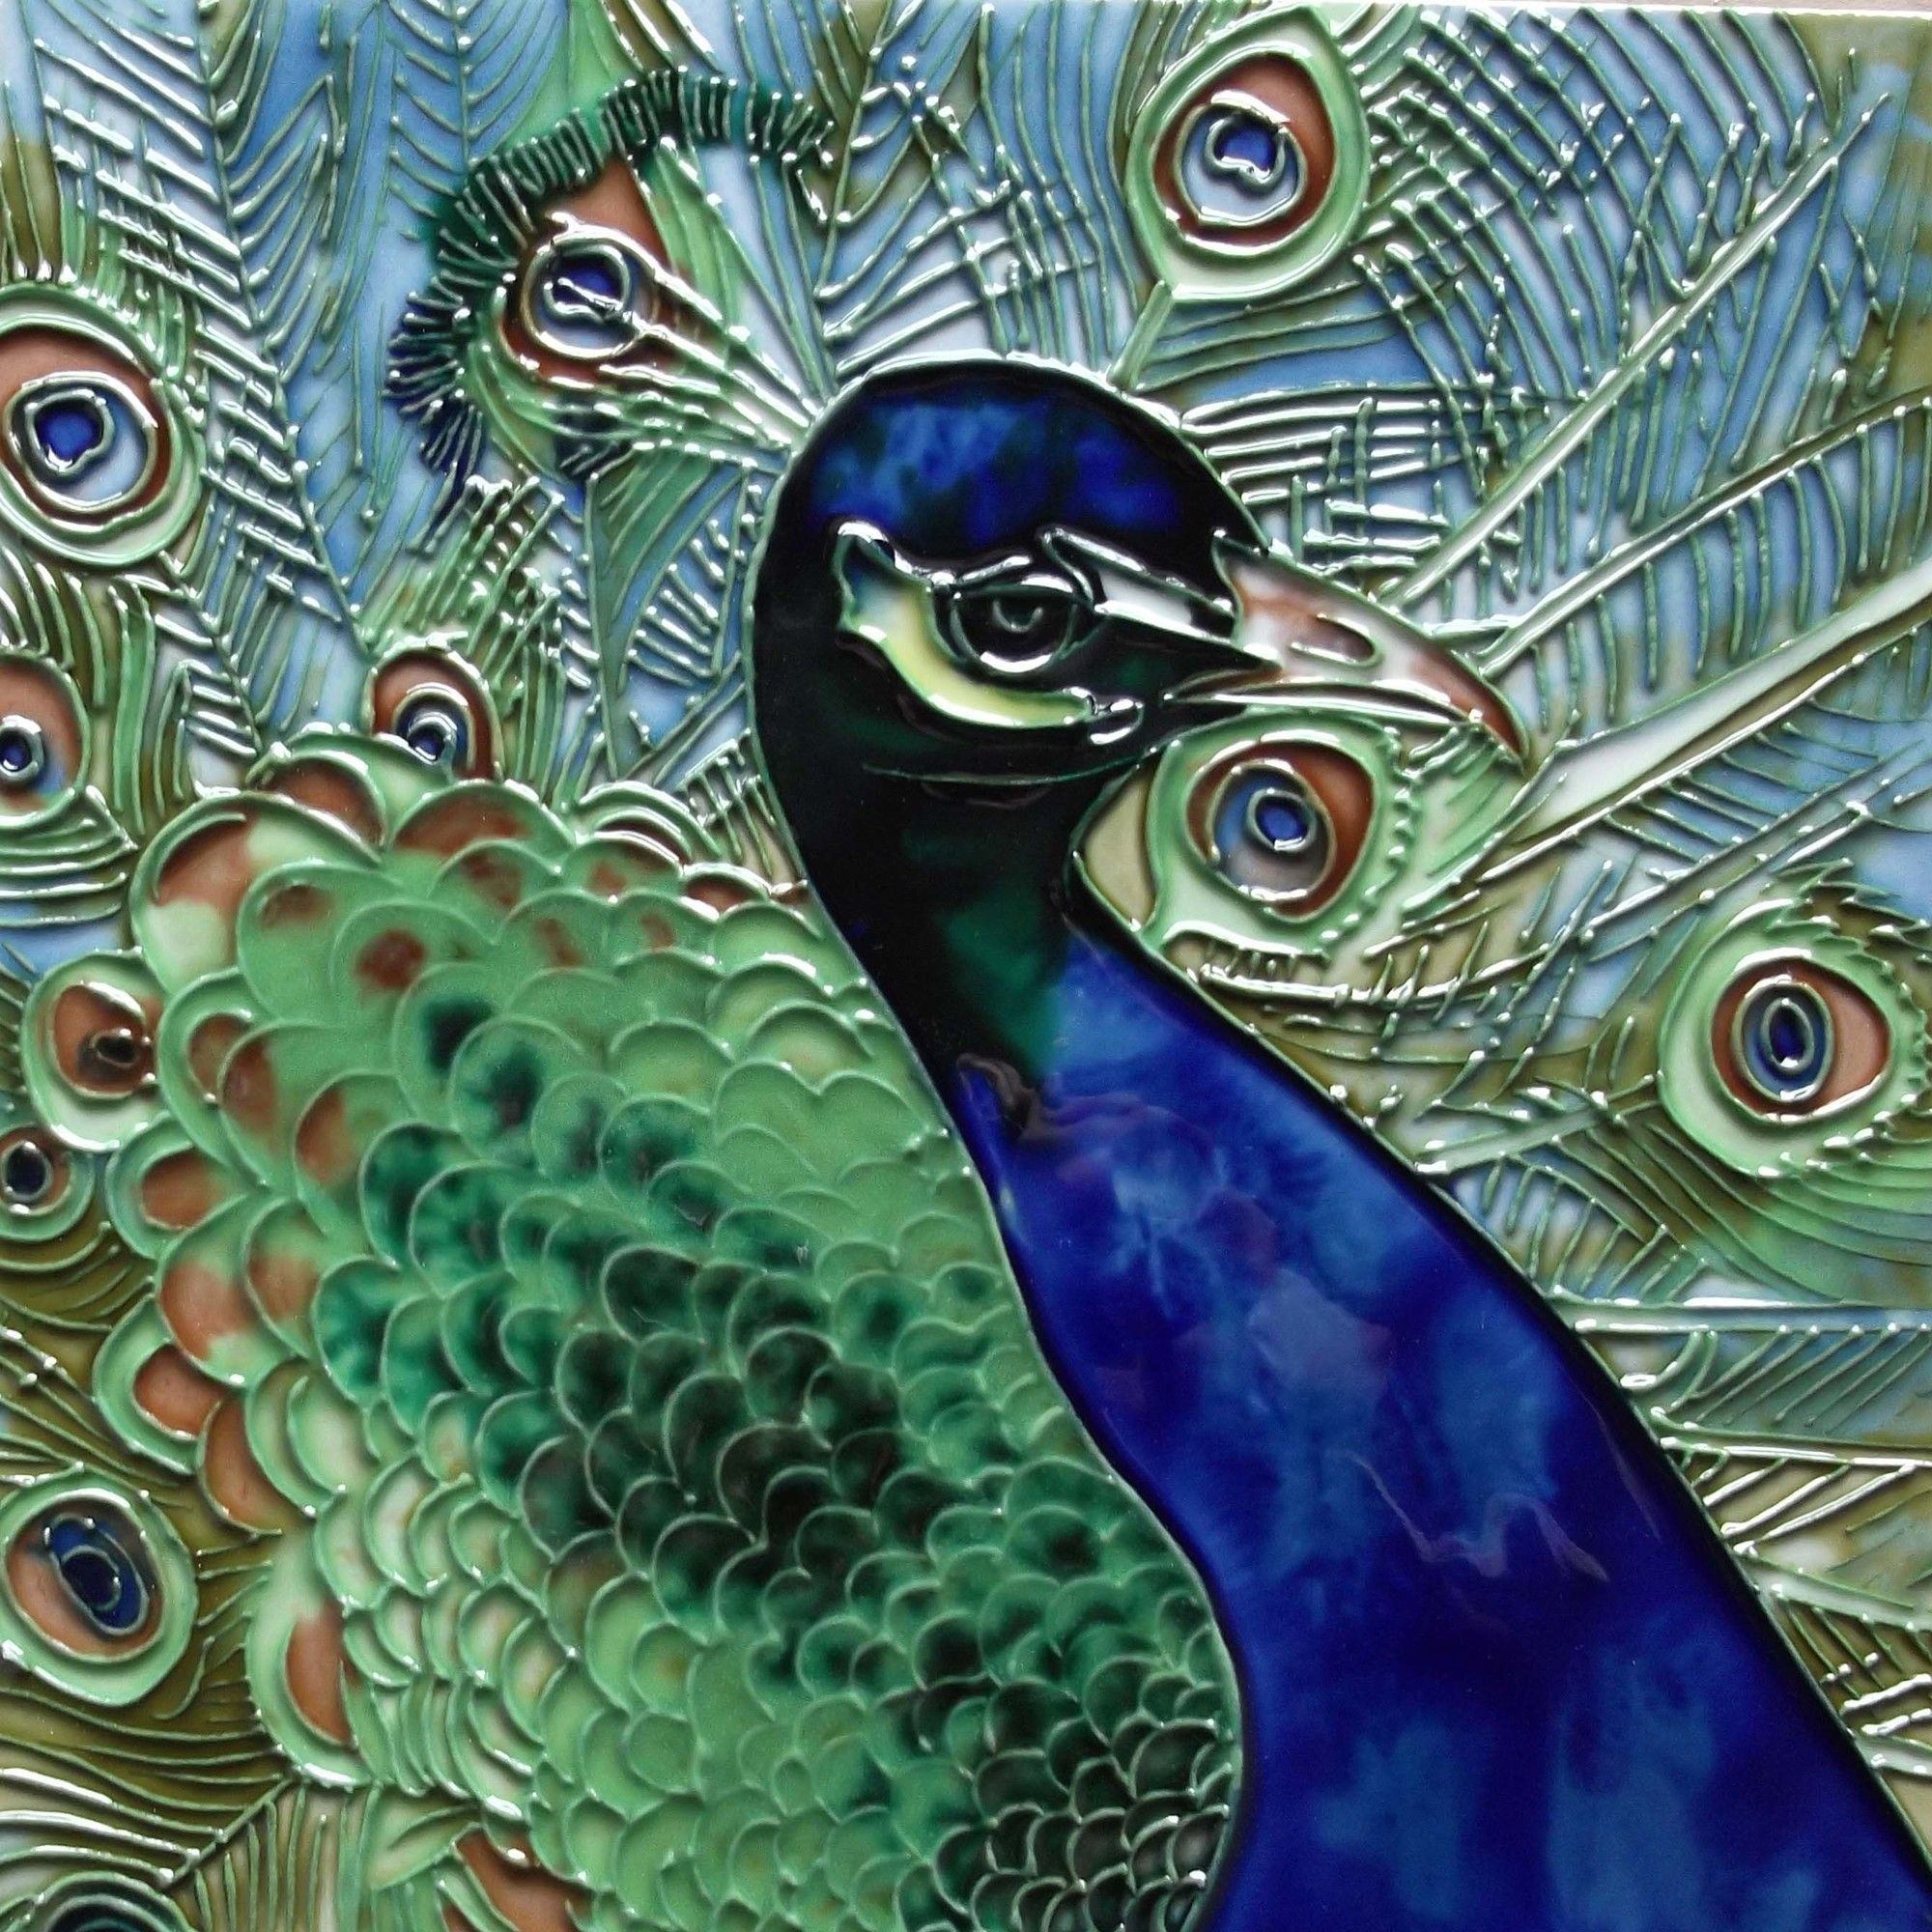 Decorative Tile Wall Art Simple Blue And Green Peacock Tile Wall Decor  Products  Pinterest Decorating Inspiration